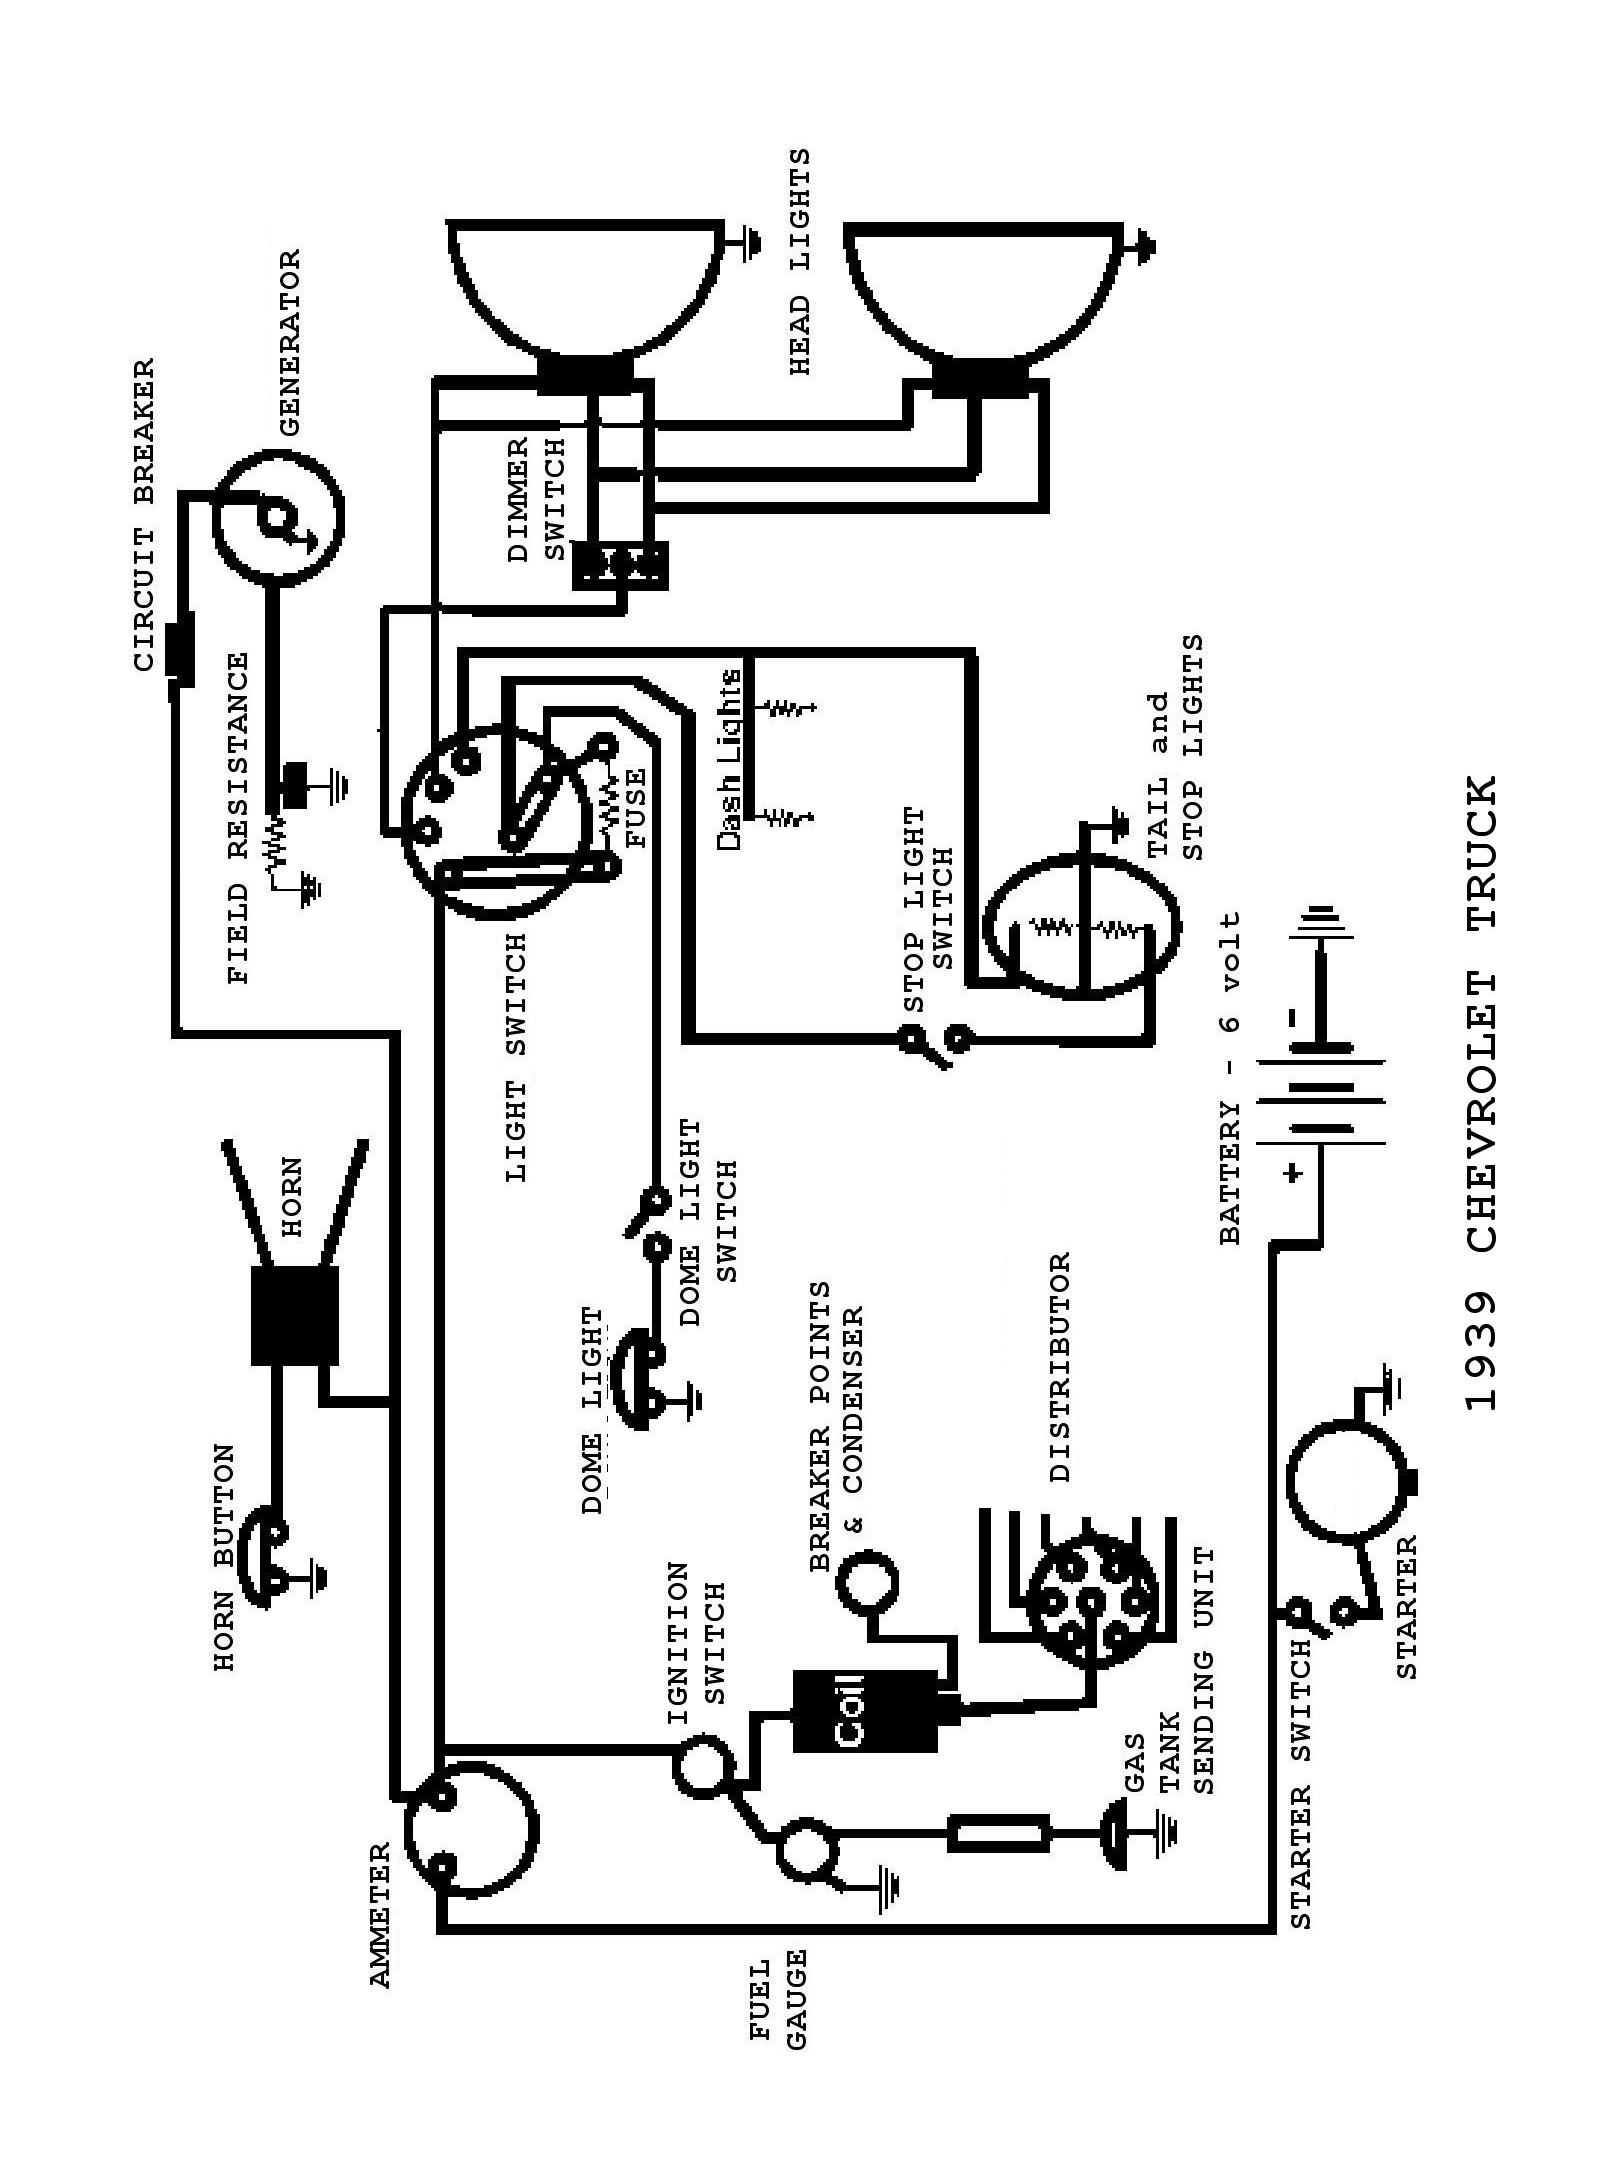 39truck ihc truck wiring diagrams mazda truck wiring diagrams \u2022 free 1979 Corvette Fuse Box Diagram at arjmand.co